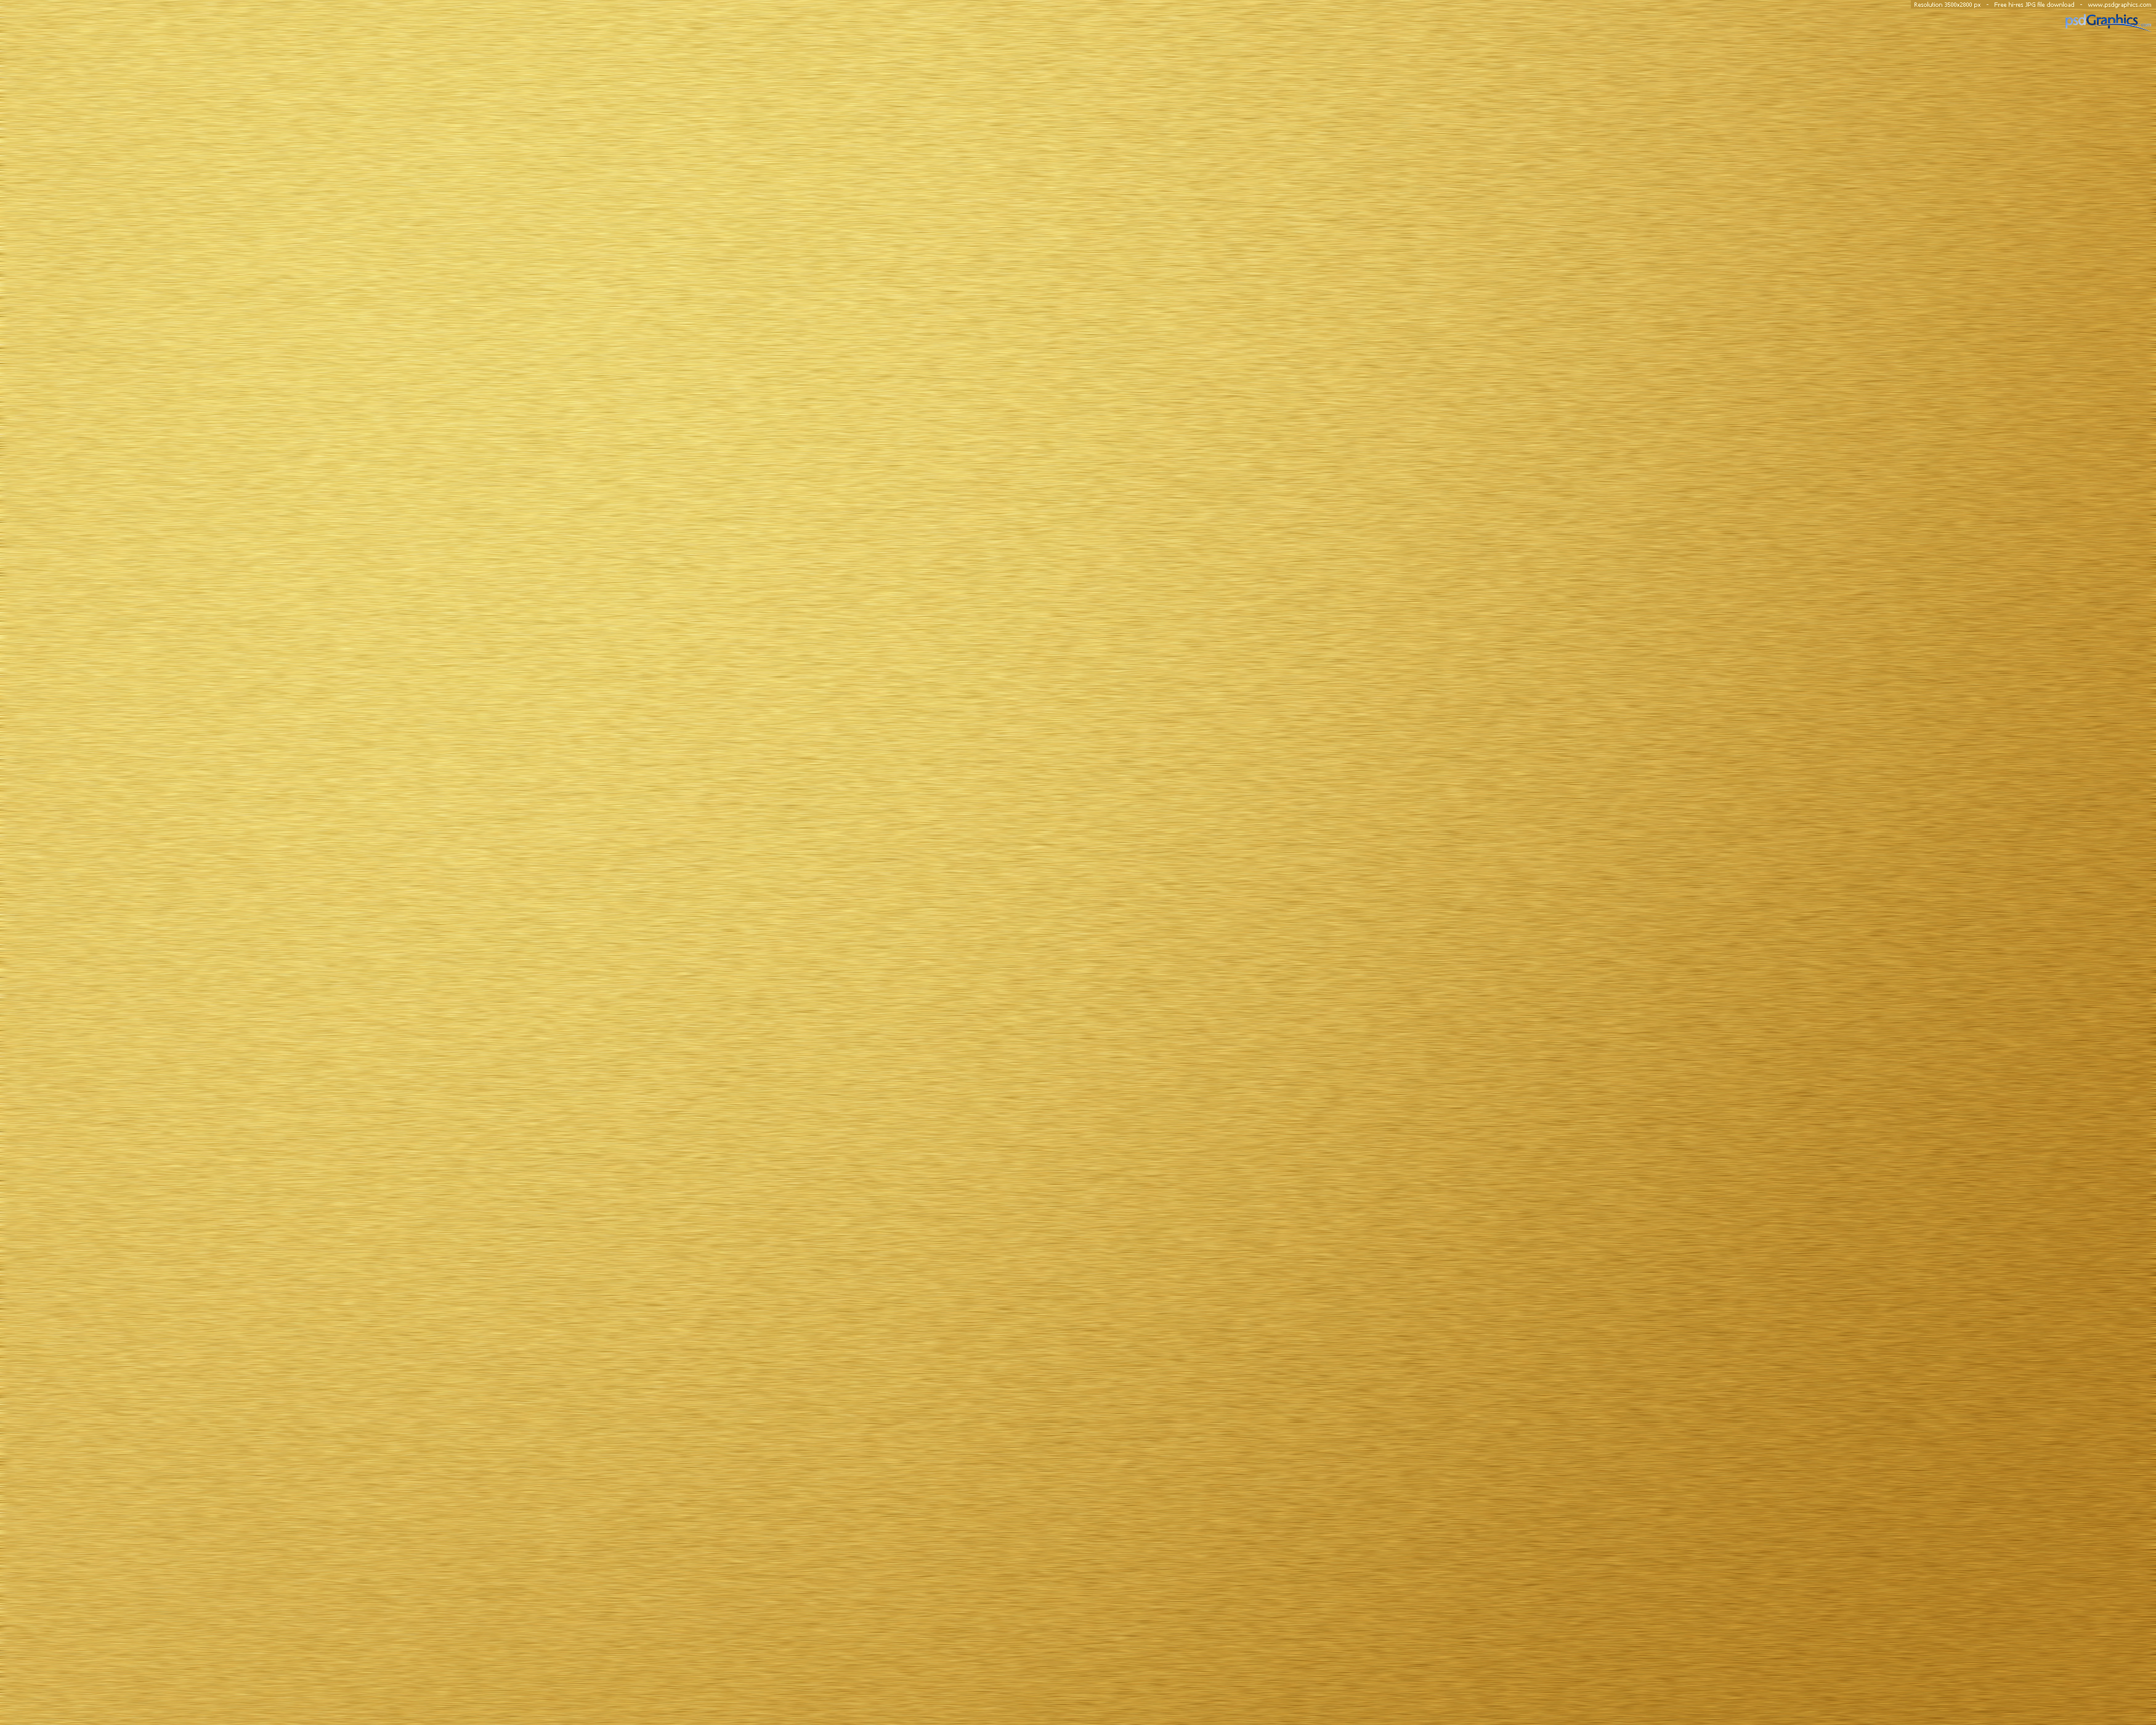 Brushed gold metal texture PSDGraphics 3500x2800